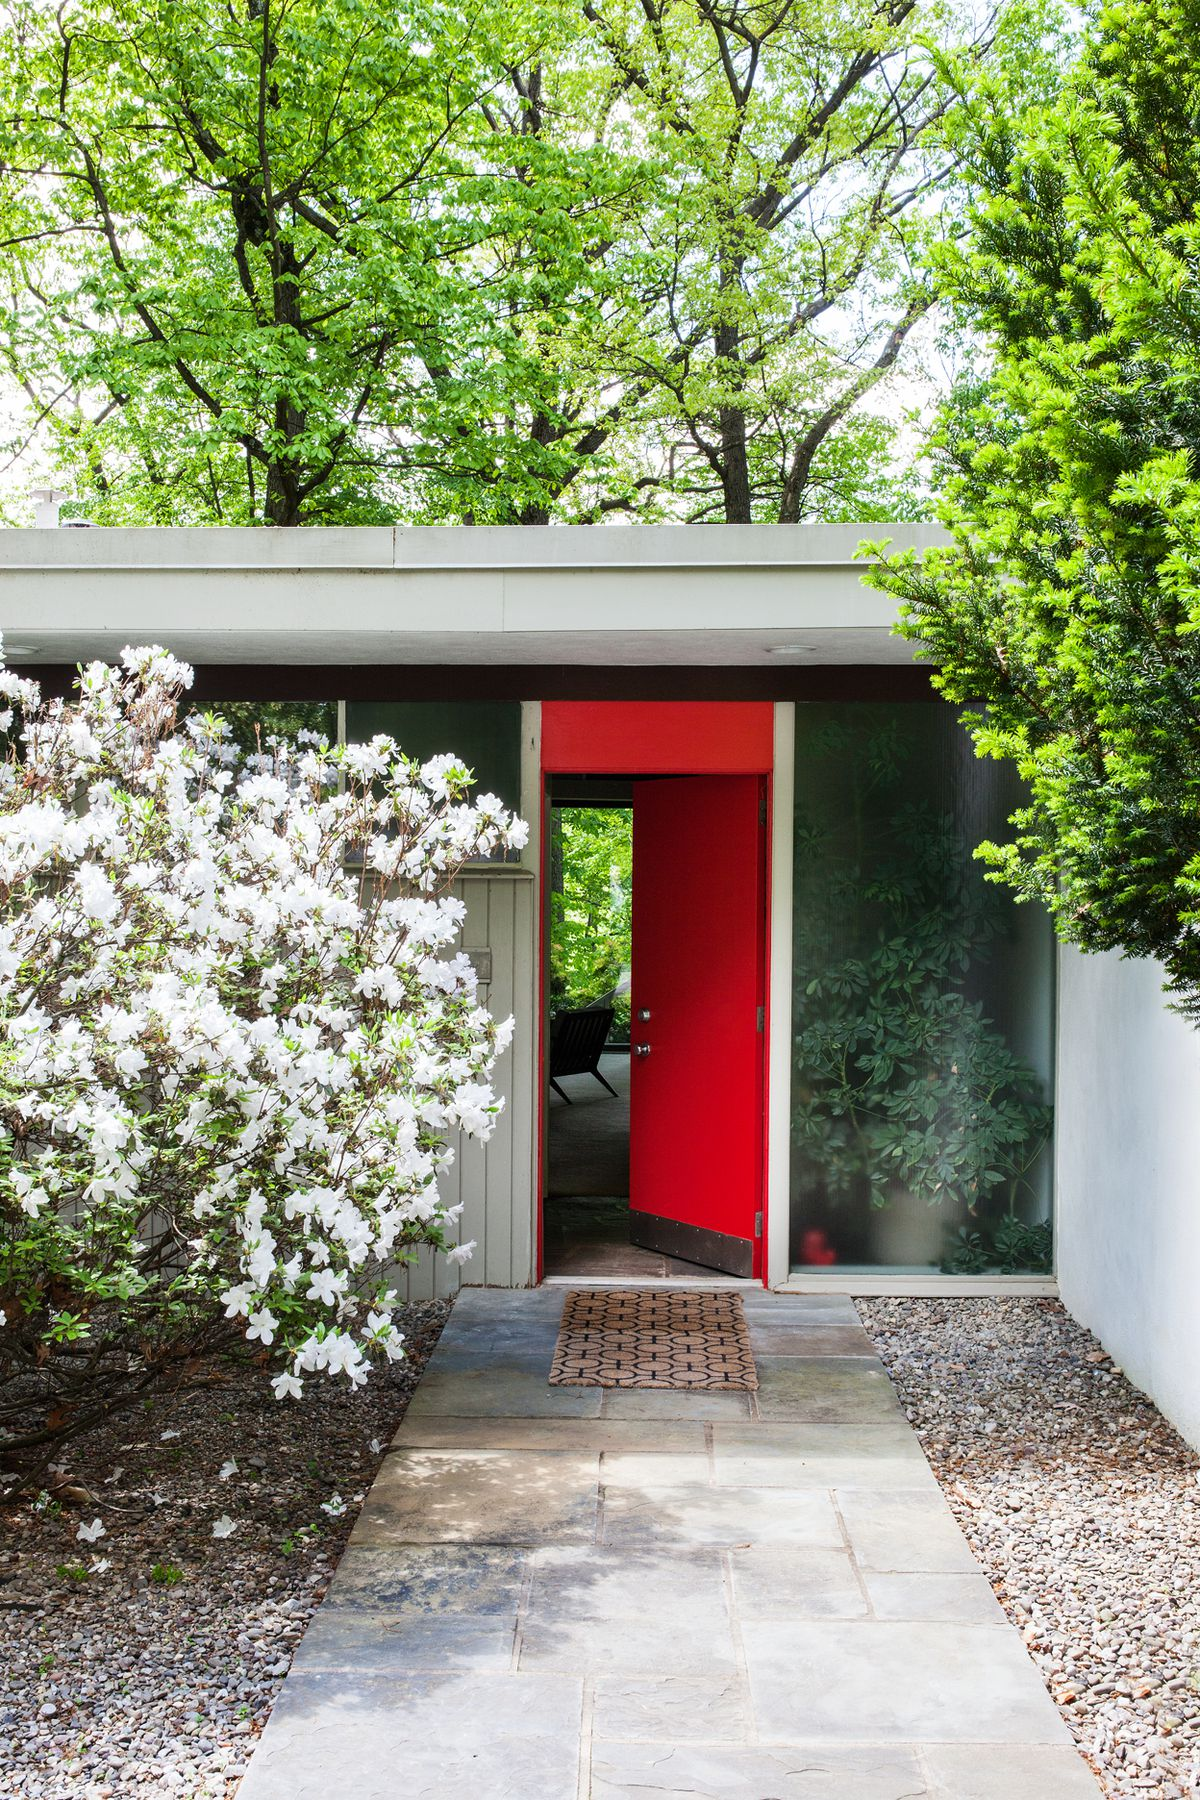 The Neutra house is painted a light gray and has large windows, but the door is painted a bright red.